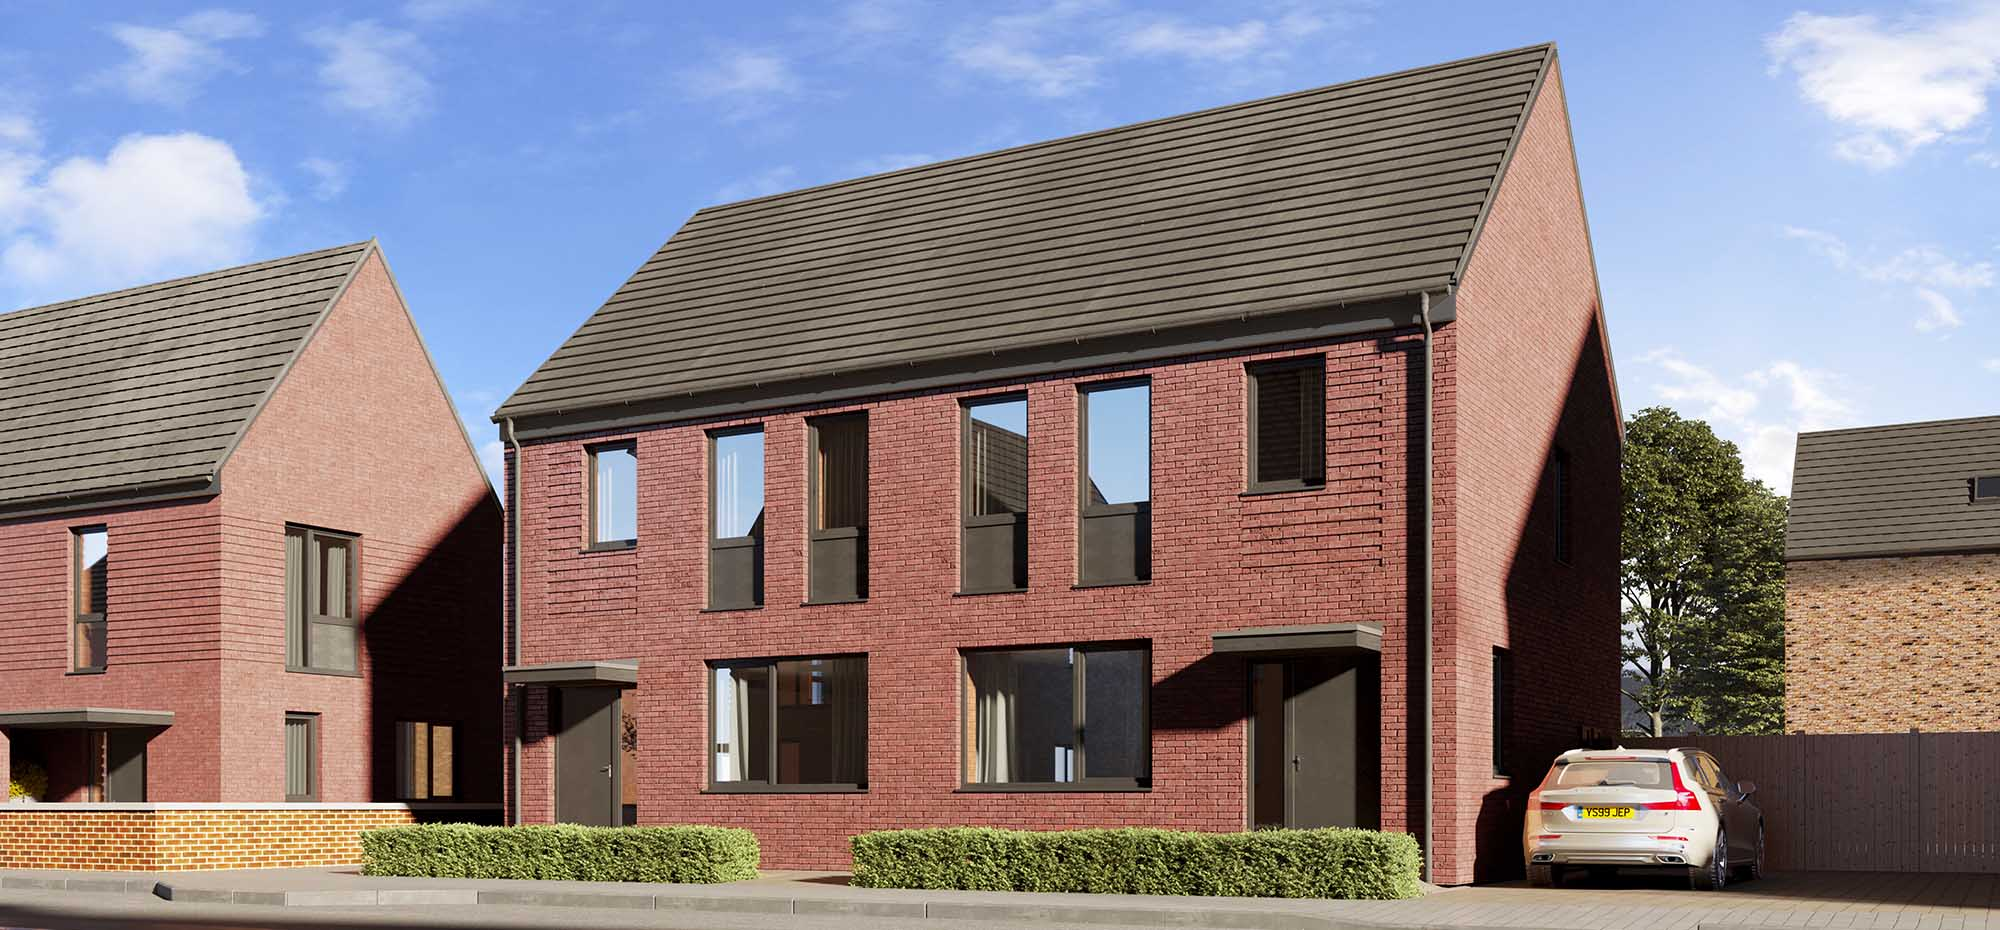 This image shows an external view of the Thyme three bedroom, semi-detached house from Shape Homes York